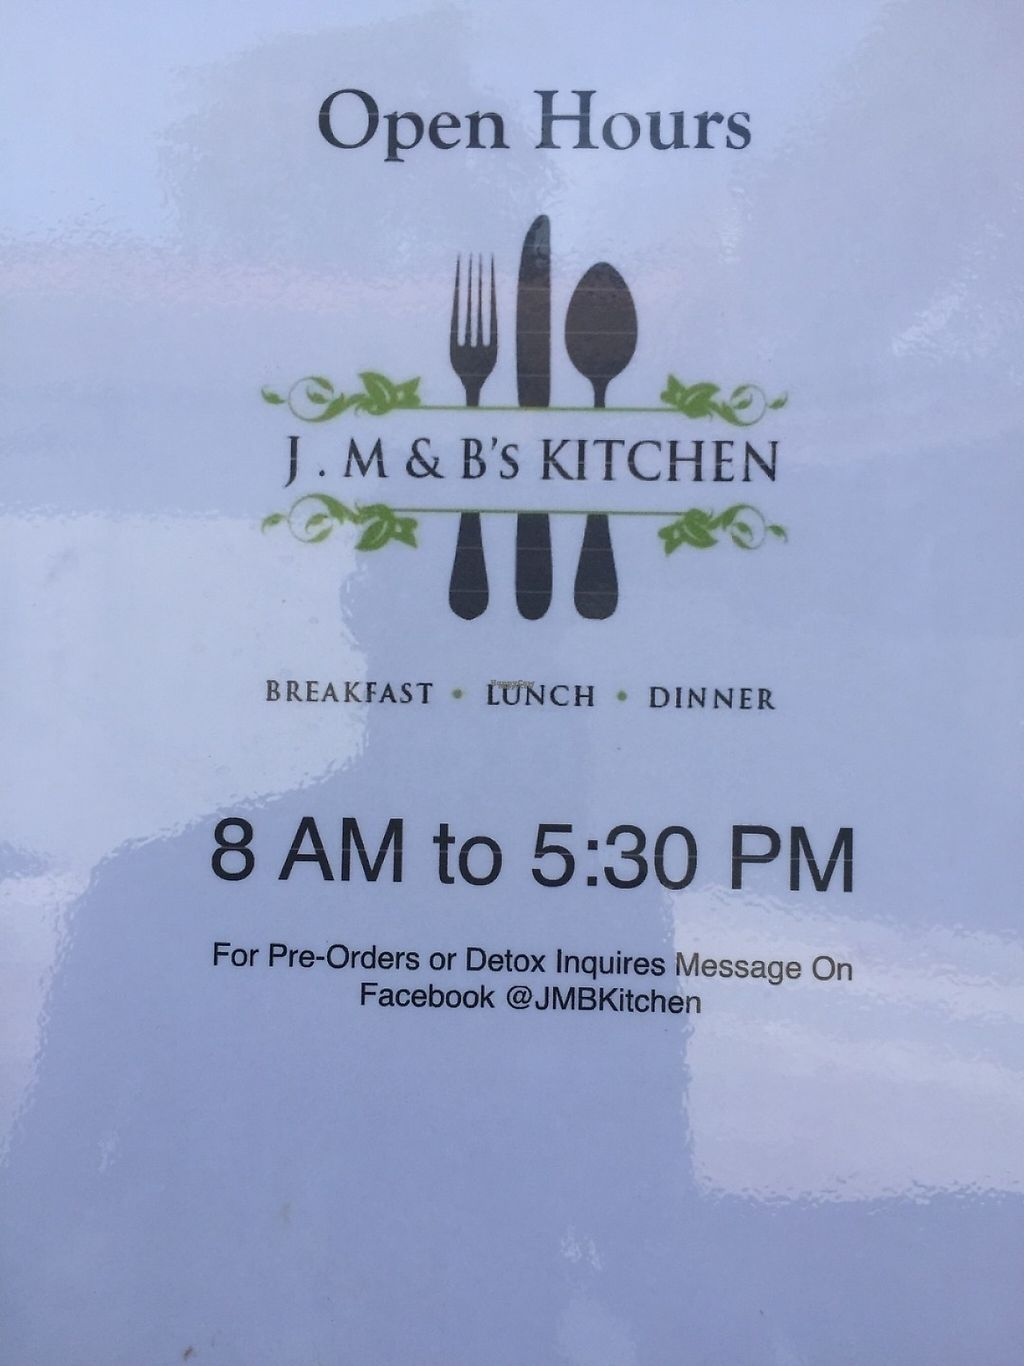 """Photo of J M & B's Kitchen  by <a href=""""/members/profile/olgagreen"""">olgagreen</a> <br/>Opening hours ( on the way to be extended) <br/> January 23, 2017  - <a href='/contact/abuse/image/85887/215230'>Report</a>"""